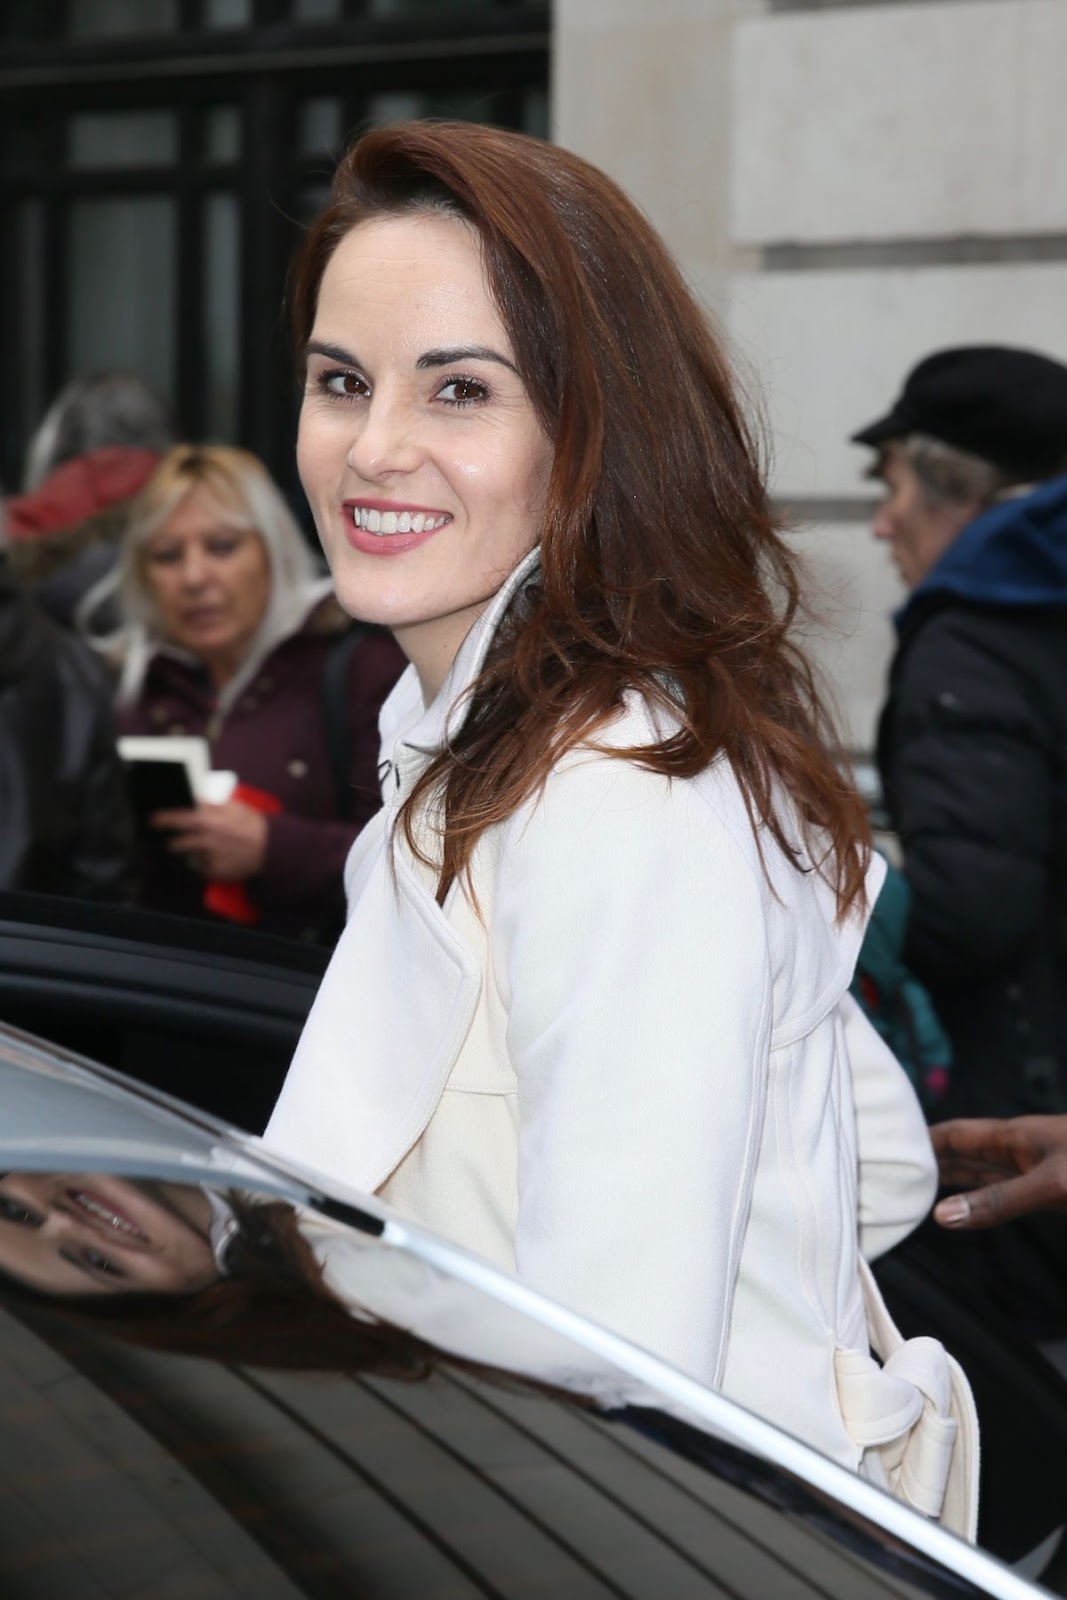 Photos of hot & sexy Michelle Dockery riding her car out side BBC Radio 2 in London